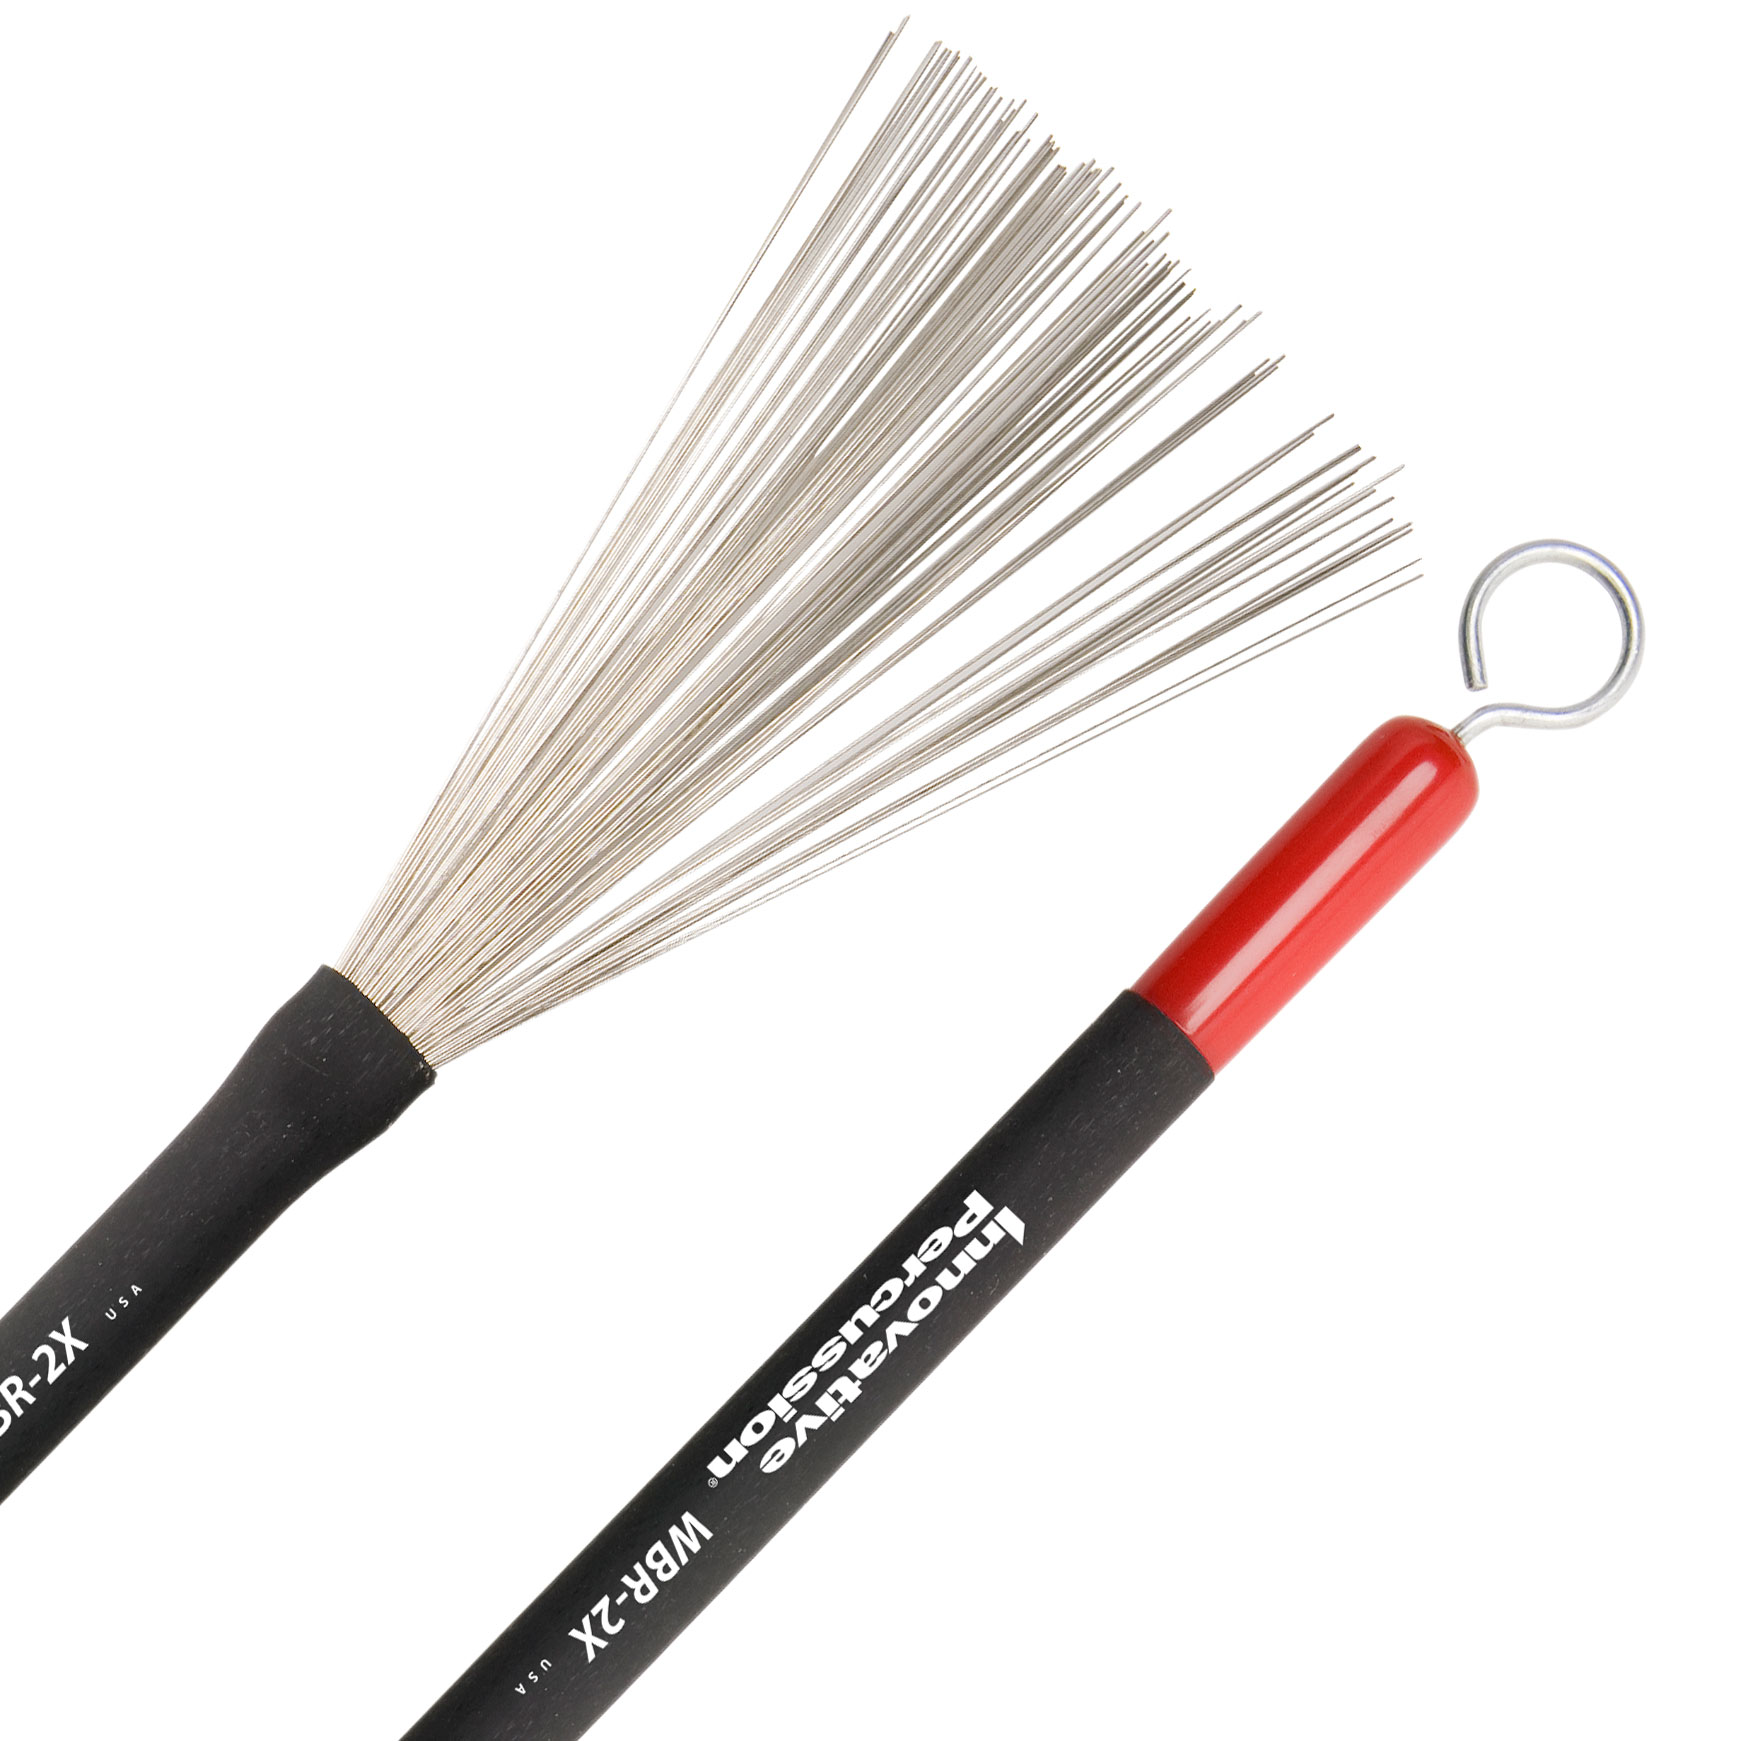 Innovative Percussion Heavy Retractable Wire Brushes with Pull Rods